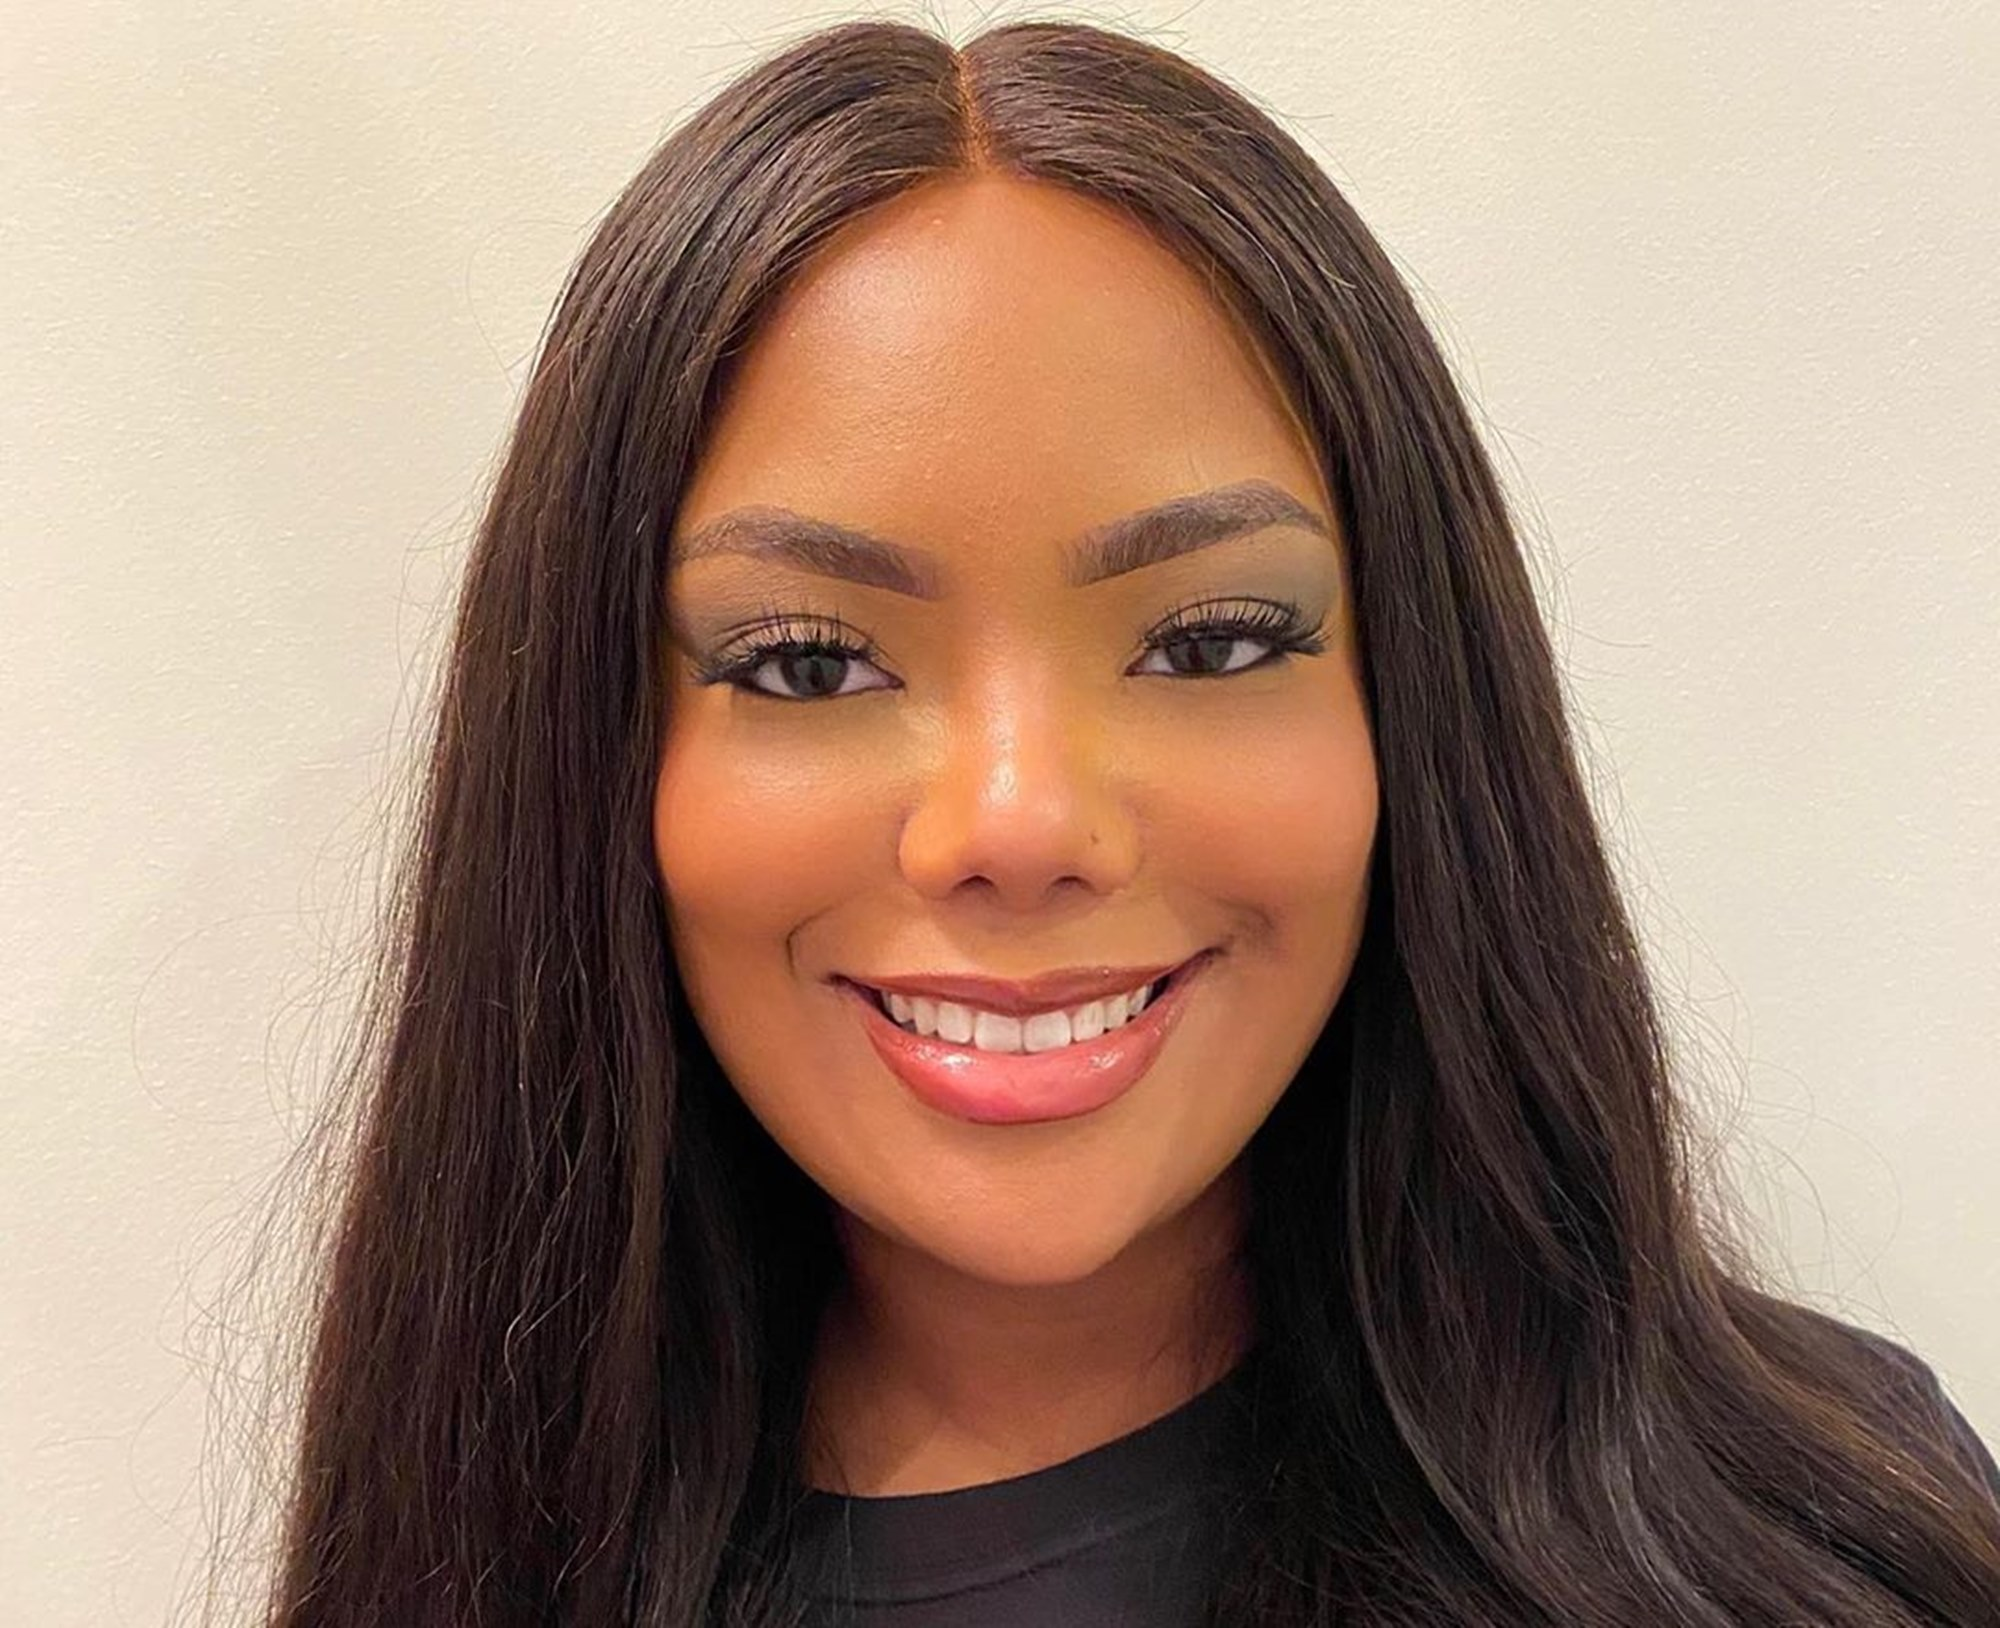 kandi-burrusss-daugther-riley-burruss-is-enjoying-life-in-new-photos-and-she-has-a-message-for-the-people-bashing-her-nose-job